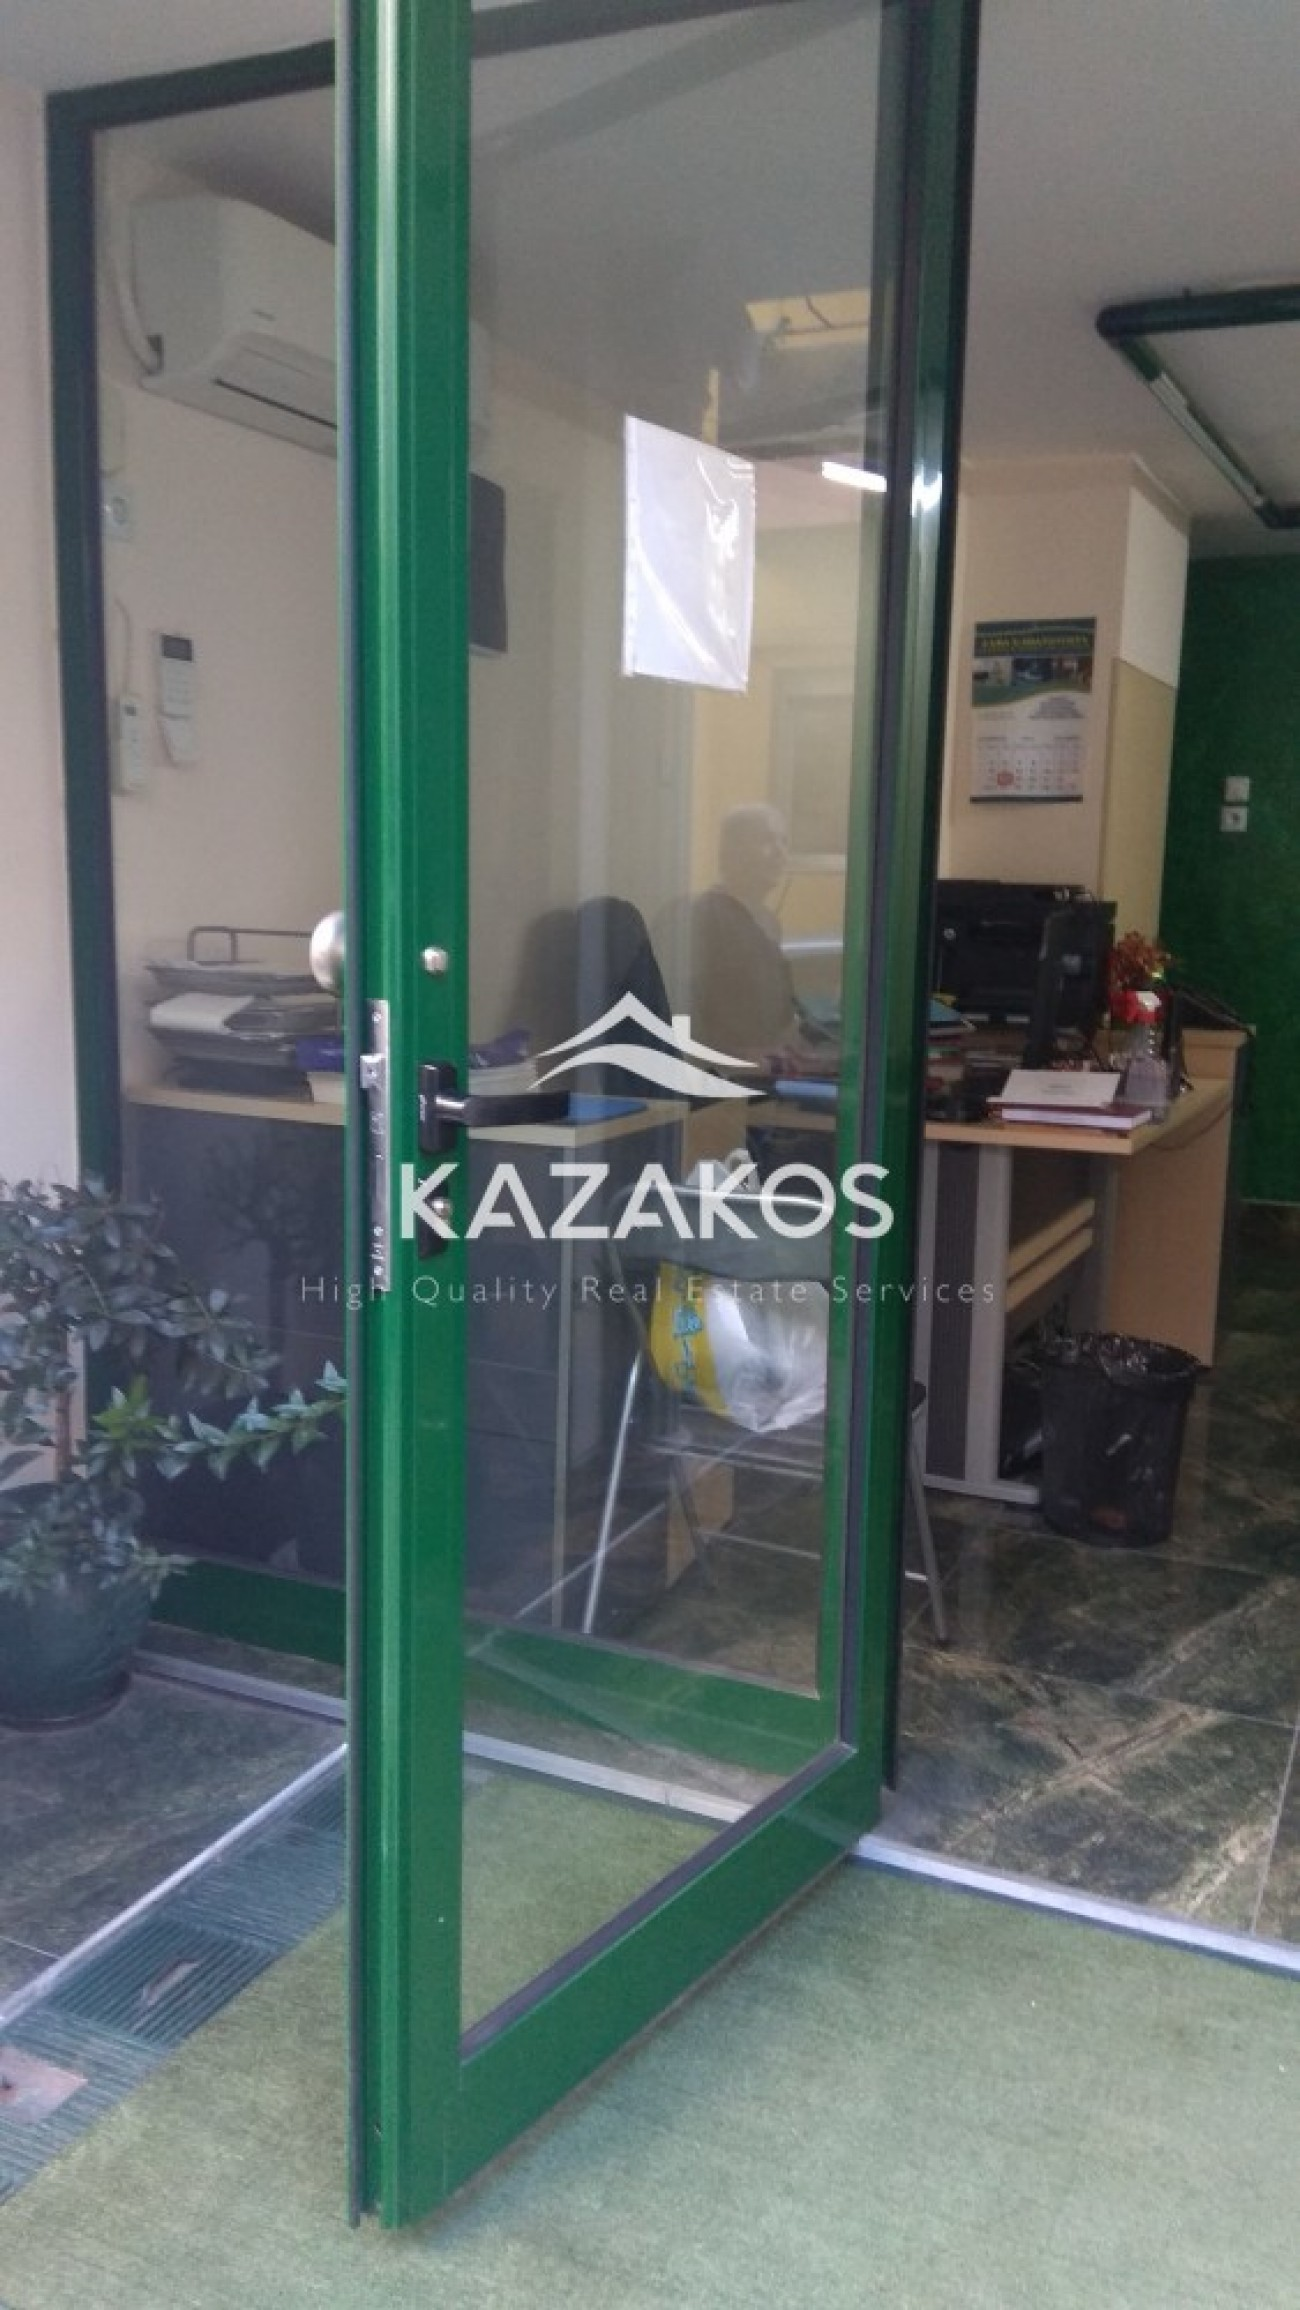 Office for Rent in Daphni, Central & South Region of Athens, Greece